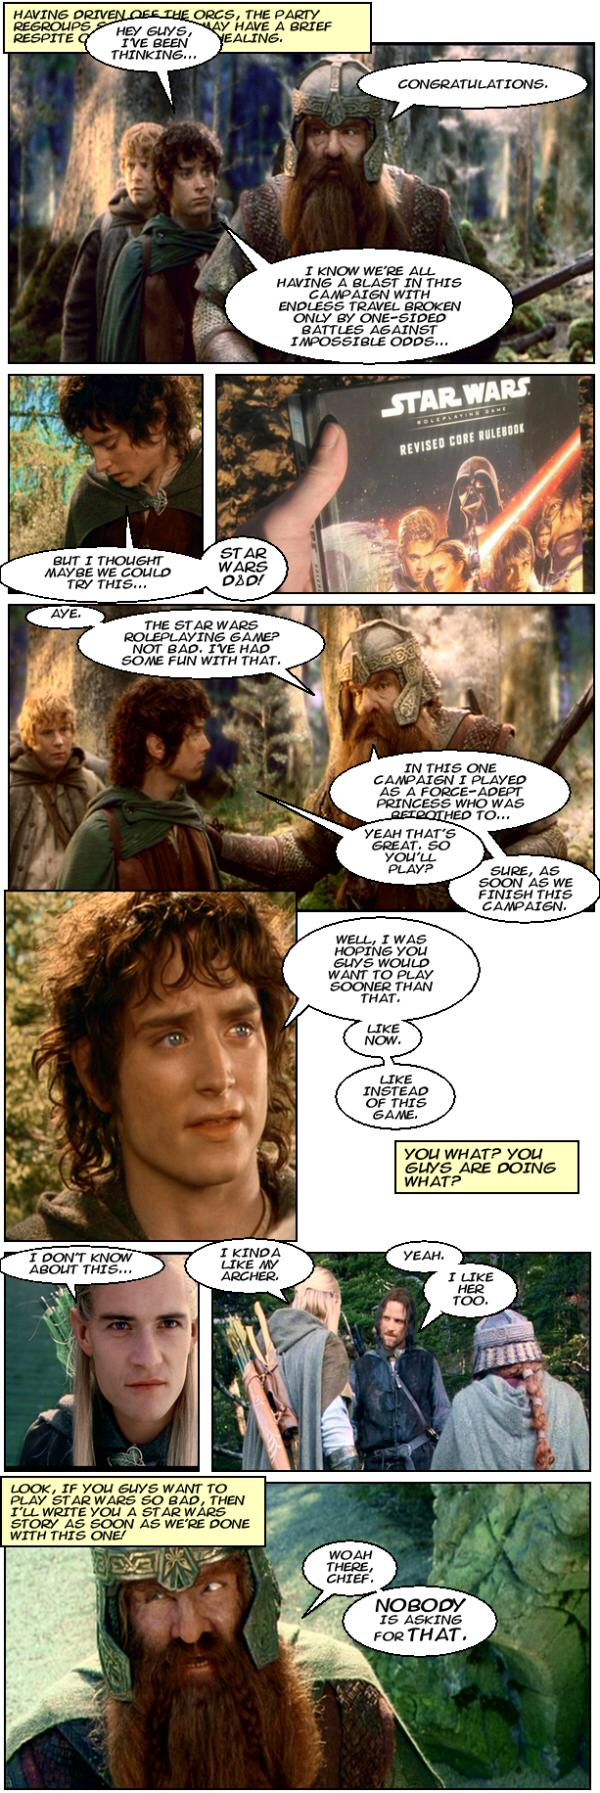 Dave as Frodo wants to play Star Wars D&D. Gimli used to play a force adept princess.